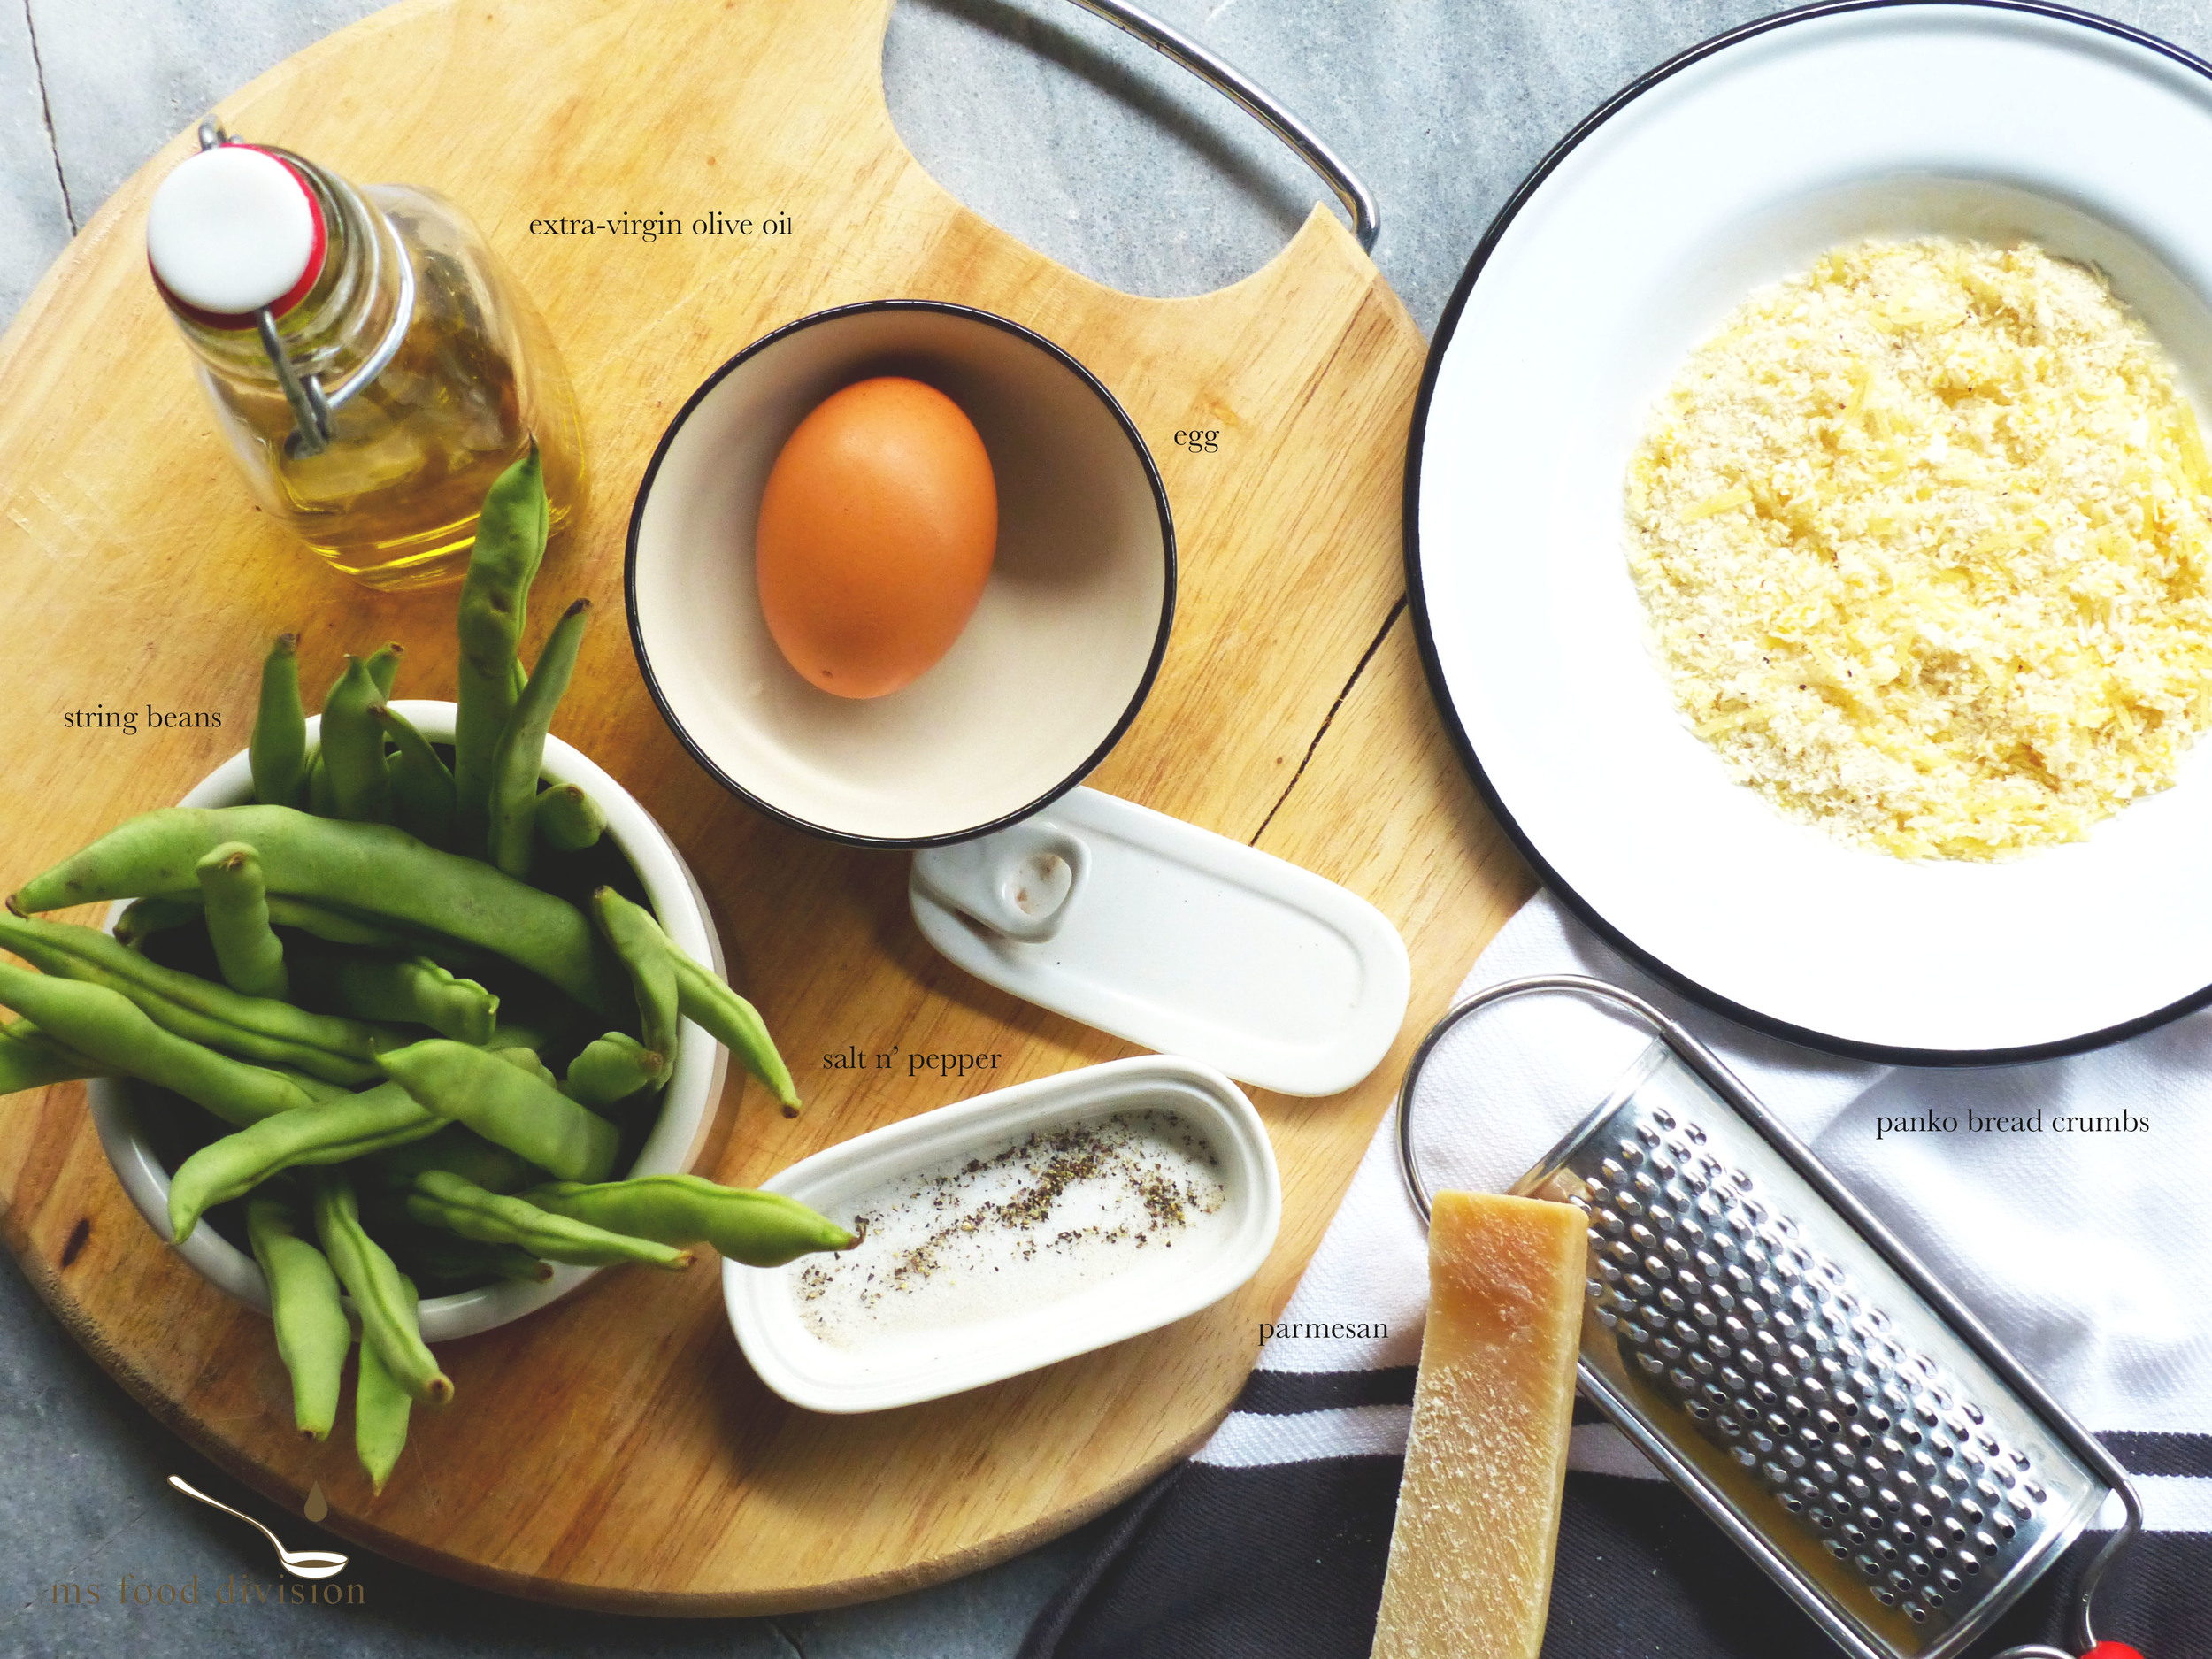 These are the few ingredients for the delicious bean fries.    Preparation Time: 5-10 minutes    Cooking Time: 20-25 minutes    Ingredients:   200g string beans  1 egg, whisked  1/2 cup panko bread crumbs  1/2 grated parmesan  2-3 tbsp extra-virgin olive oil    Instructions:     1) Preheat oven at 200ºC, get two baking trays with baking sheets. Spread a little olive oil on each baking sheet.    2) Get a large mixing bowl, add bread crumbs and cheese, season. Mix well.    3) Whisk an egg on a shallow plate and make sure each string bean is coated with egg mixture.    4) Coat the string beans with bread crumbs and cheese mixture.     5) Transfer the beans to the baking dish and make sure each is layingseparately without overlapping each other to get the best result of the crunchiness.    6) Bake for 20-25 minutes and serve HOT with your favorite dipping.